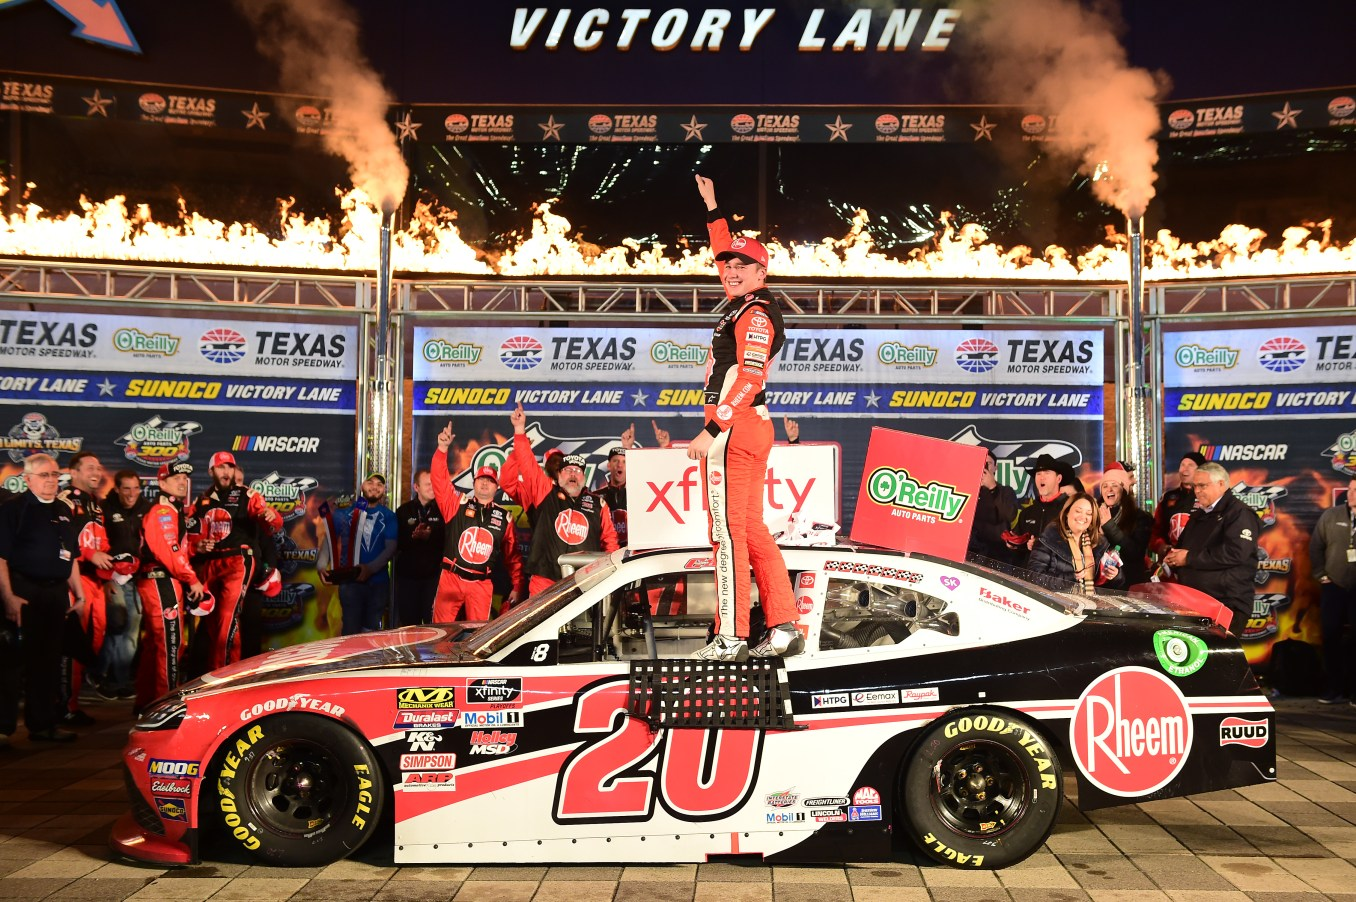 FORT WORTH, TEXAS - NOVEMBER 02: Christopher Bell, driver of the #20 Rheem Toyota, celebrates in Victory Lane after winning the NASCAR Xfinity Series O'Reilly Auto Parts 300 at Texas Motor Speedway on November 02, 2019 in Fort Worth, Texas. (Photo by Jared C. Tilton/Getty Images)